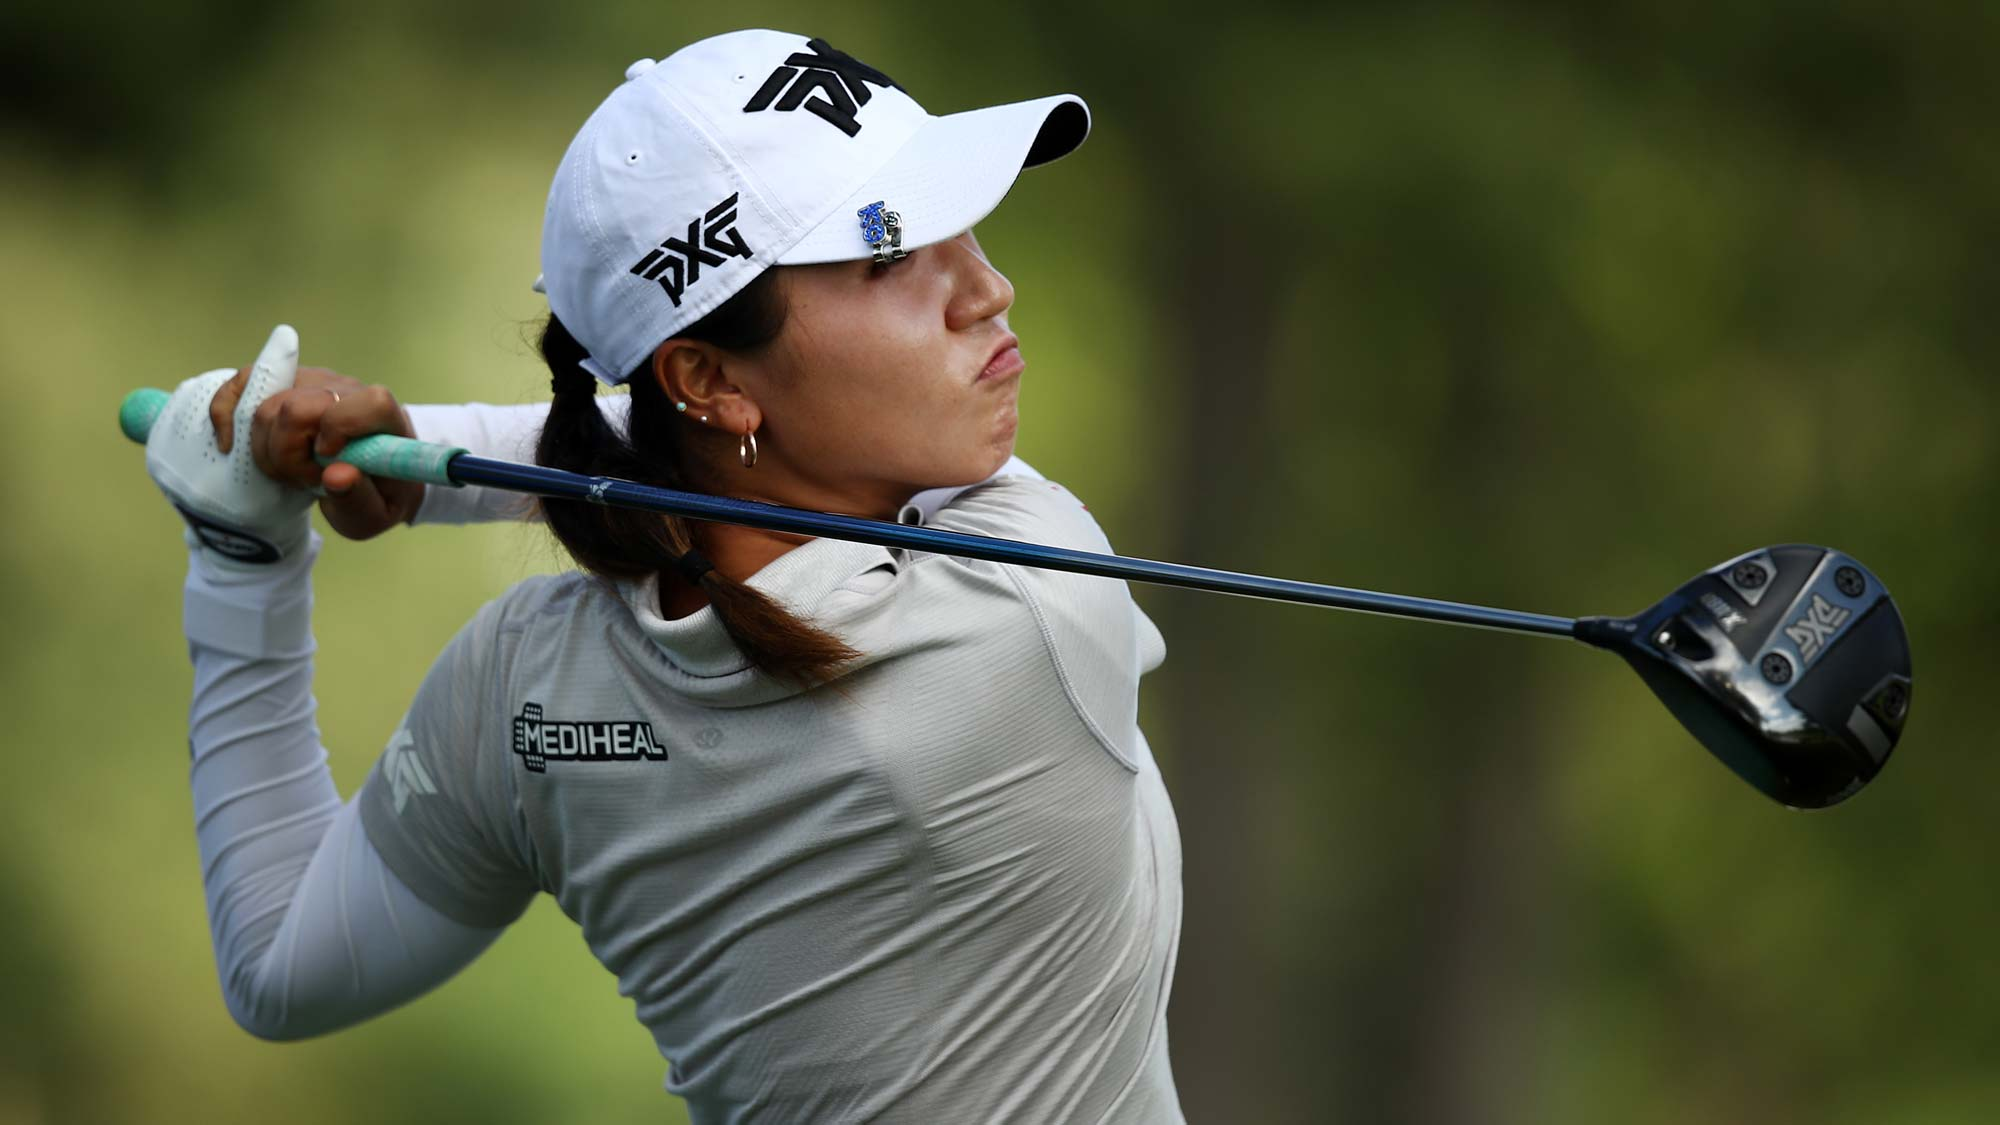 Lydia Ko of New Zealand tees off on the 16th tee during the first round of the LPGA Walmart NW Arkansas Championship